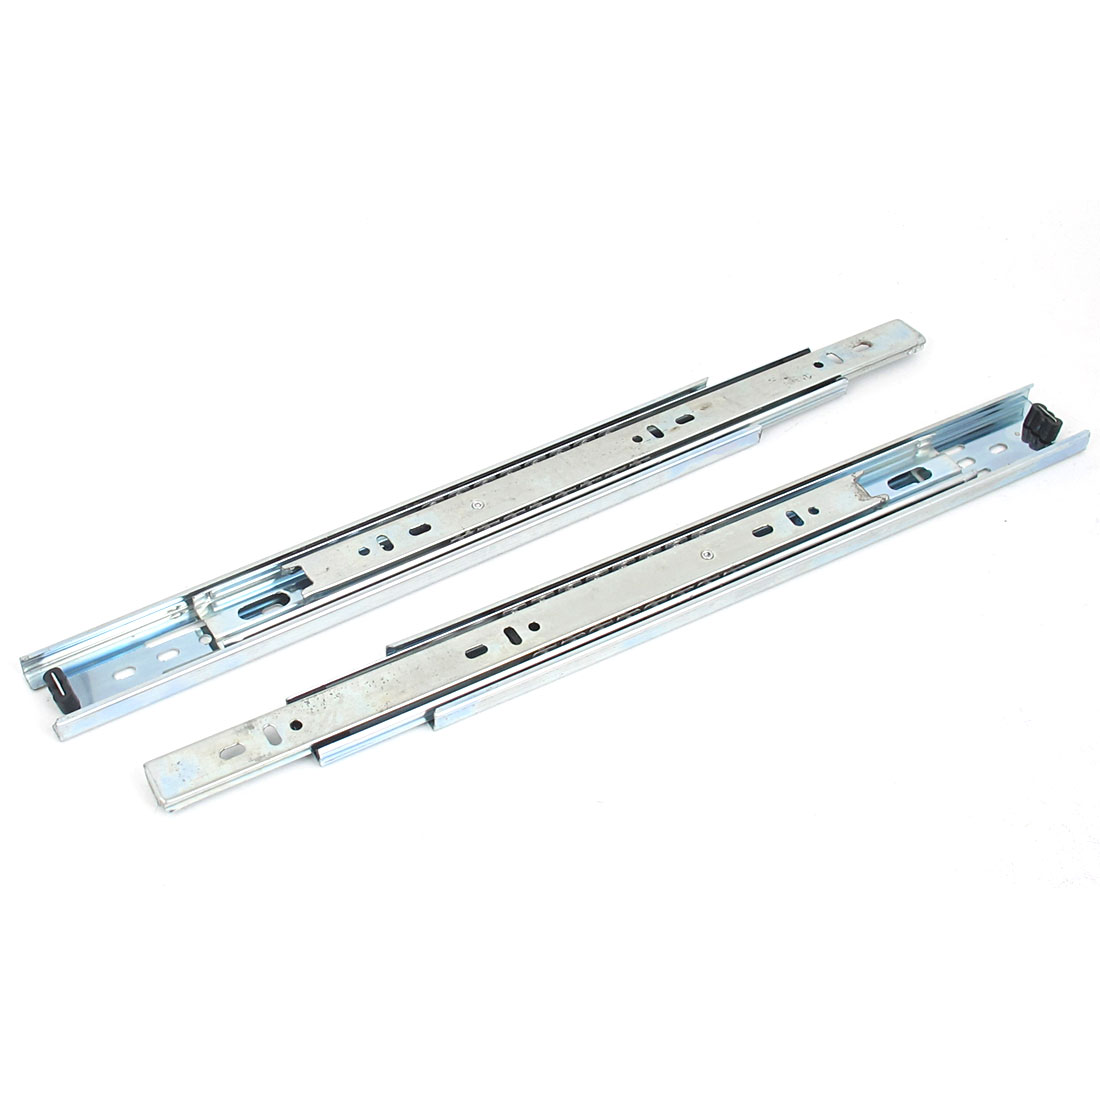 "13"" Length Full Extended Ball Bearing Noise Elimination Close Drawer Slide 2pcs"